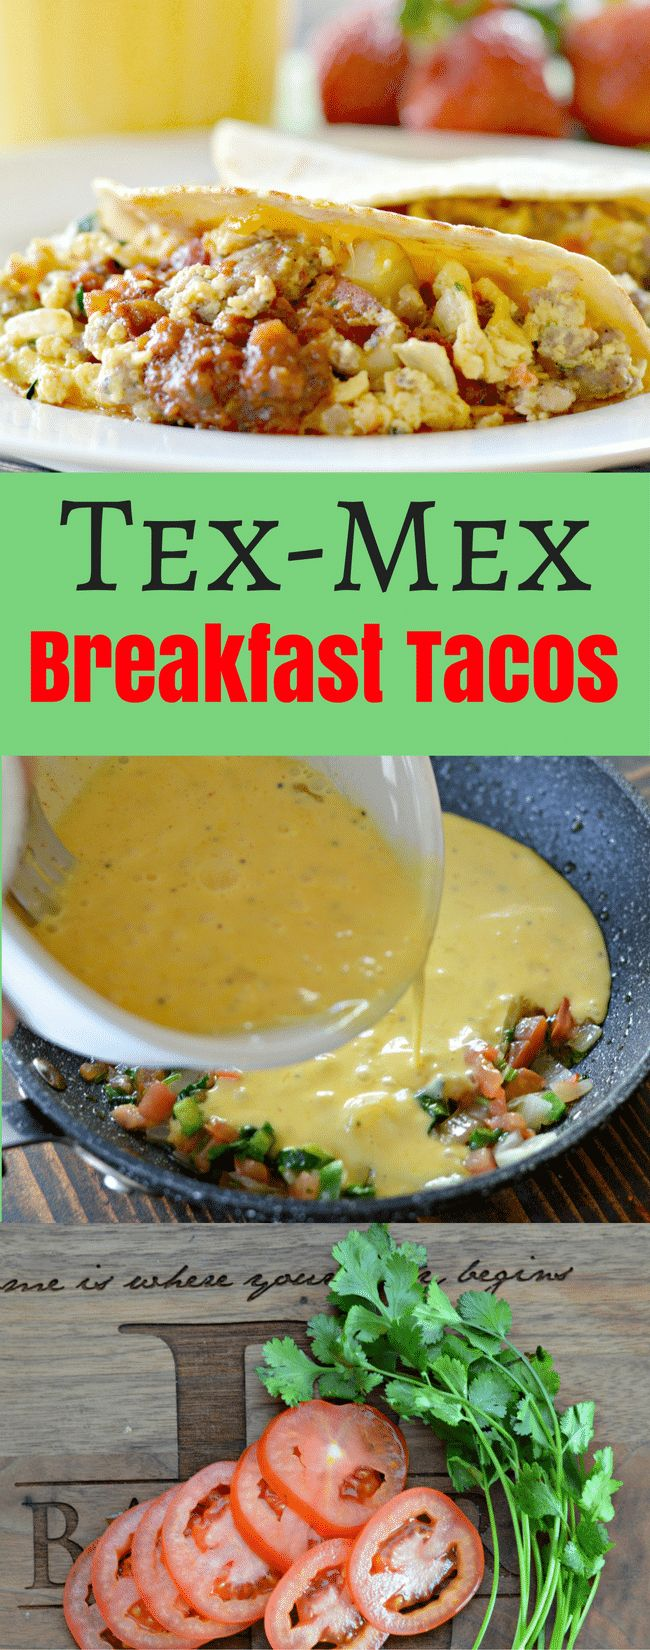 These Tex-Mex breakfast tacos are so easy to make, yet delicious! They are great for breakfast, brunch or anytime! AD SmithfieldBrunch